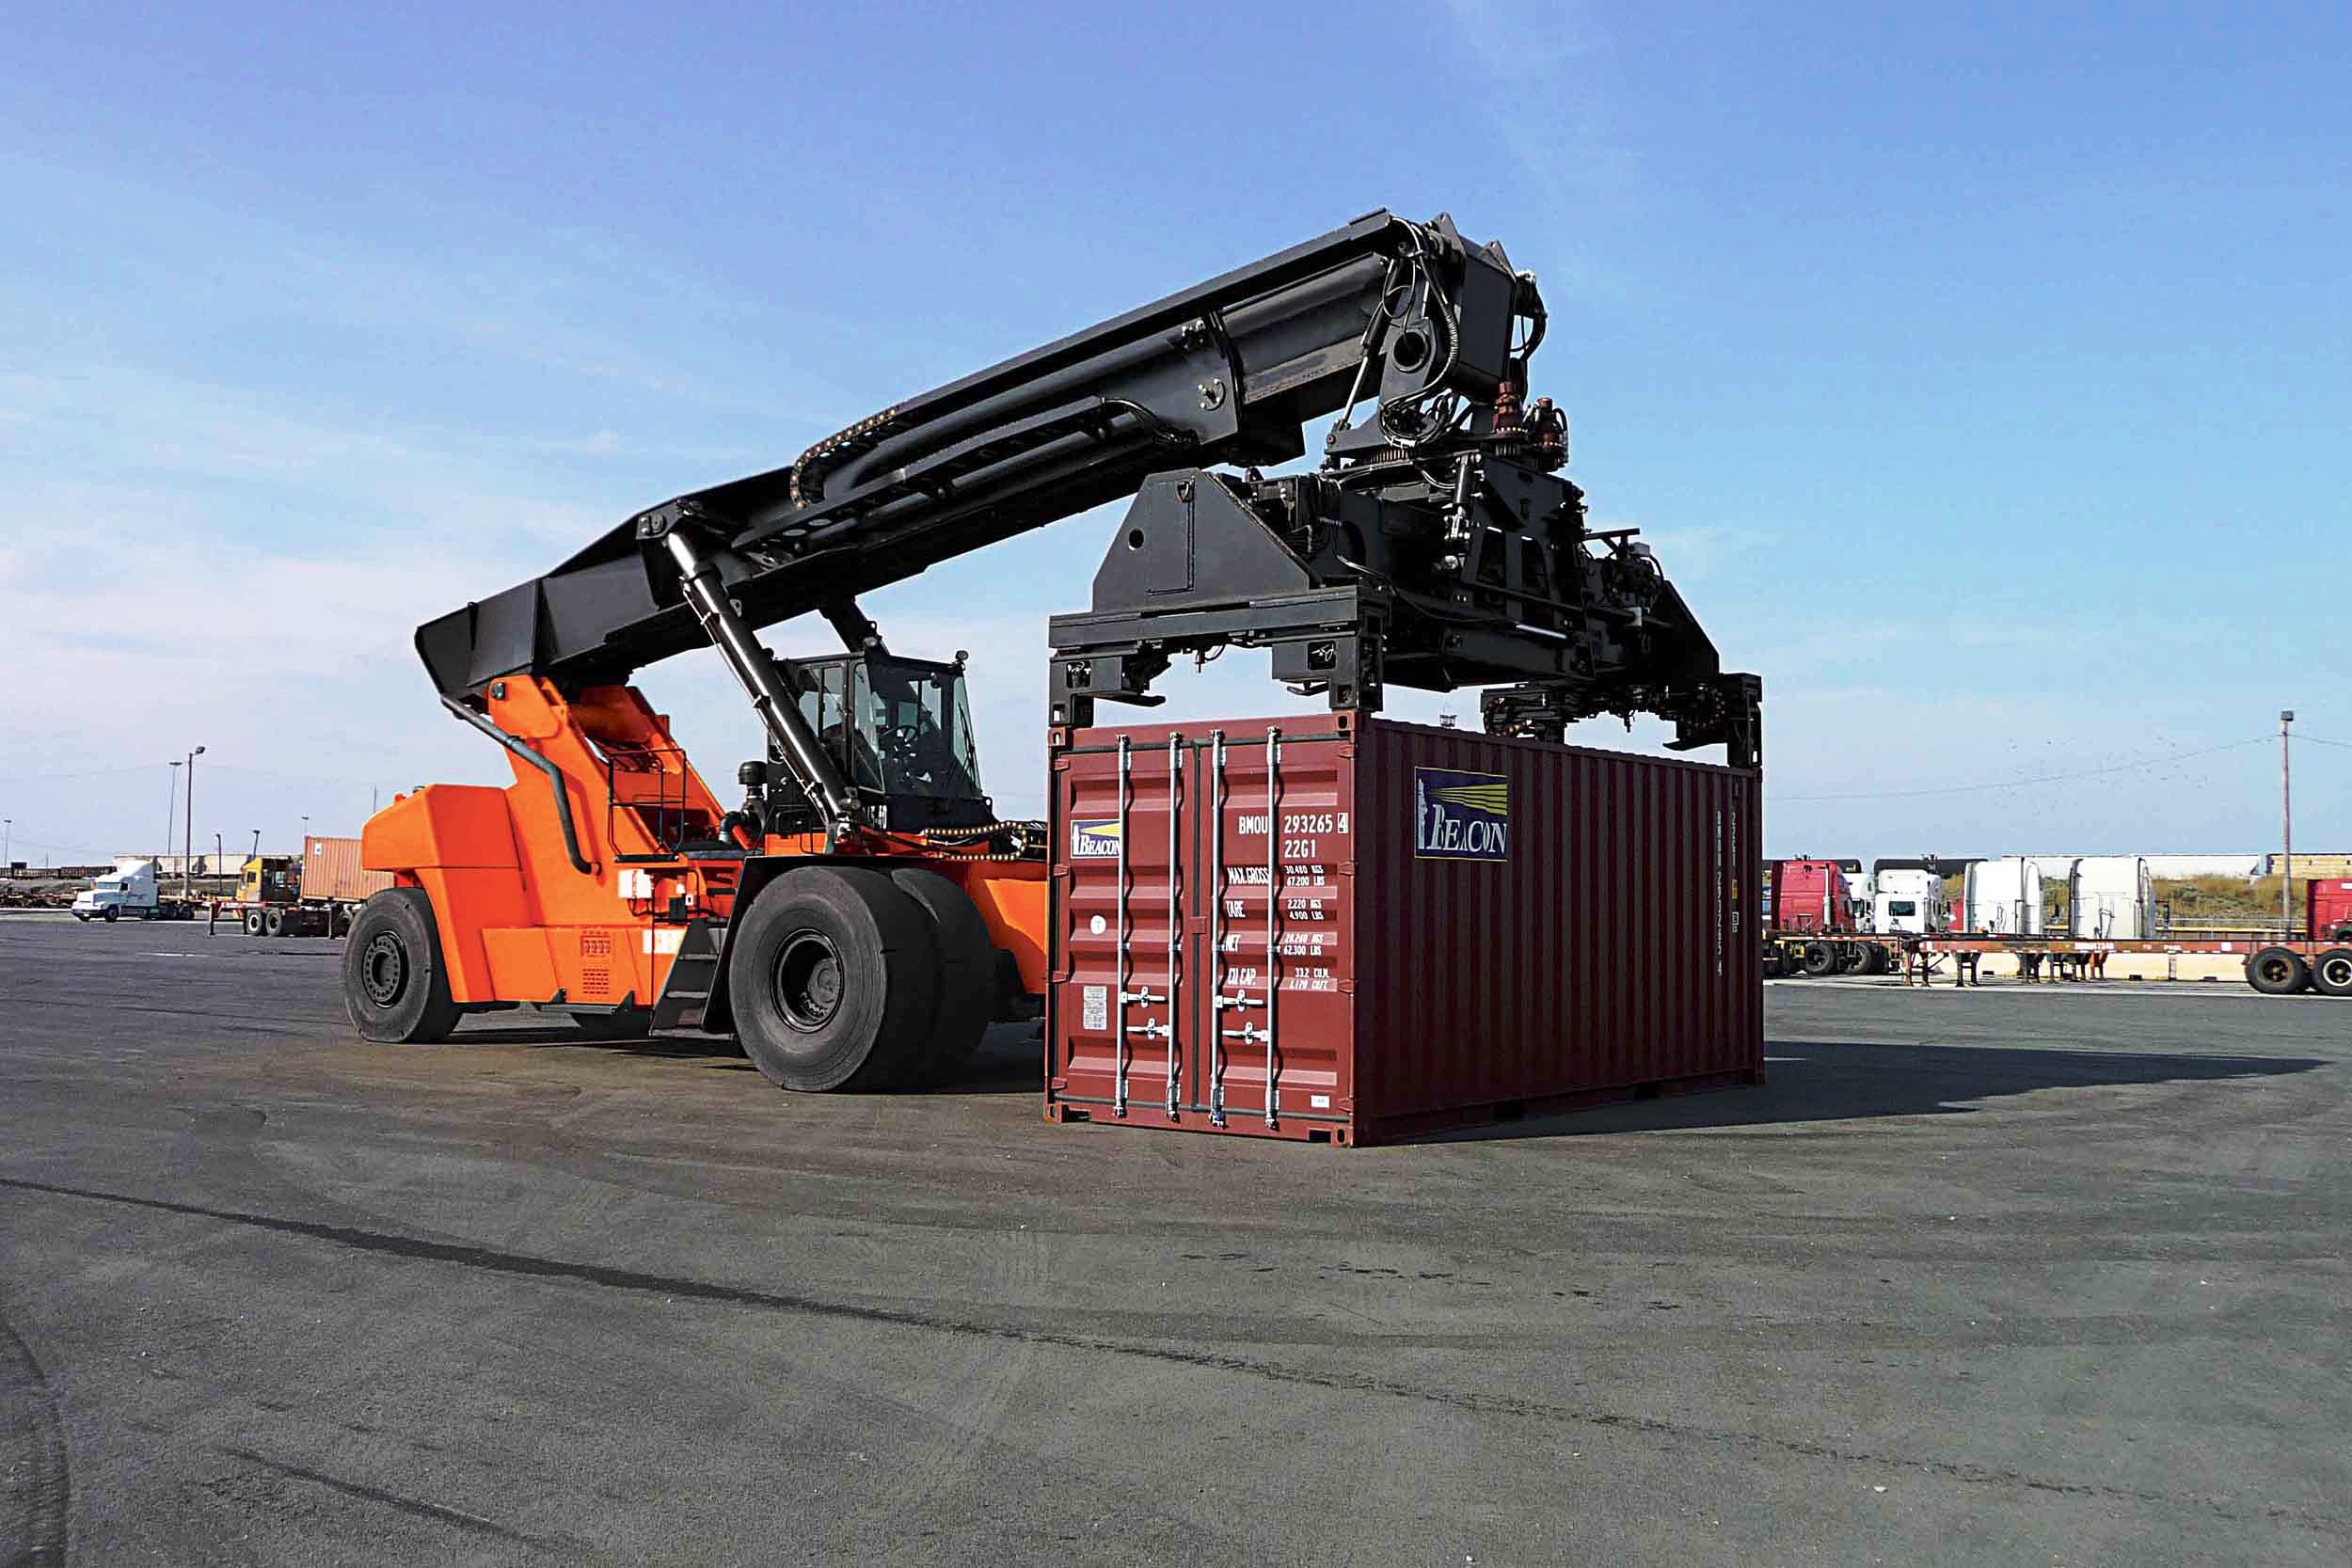 6.LCH МАНИПУЛАТОР ЗА КОНТЕЙНЕРИ PROINSTALL Loaded Container Handler